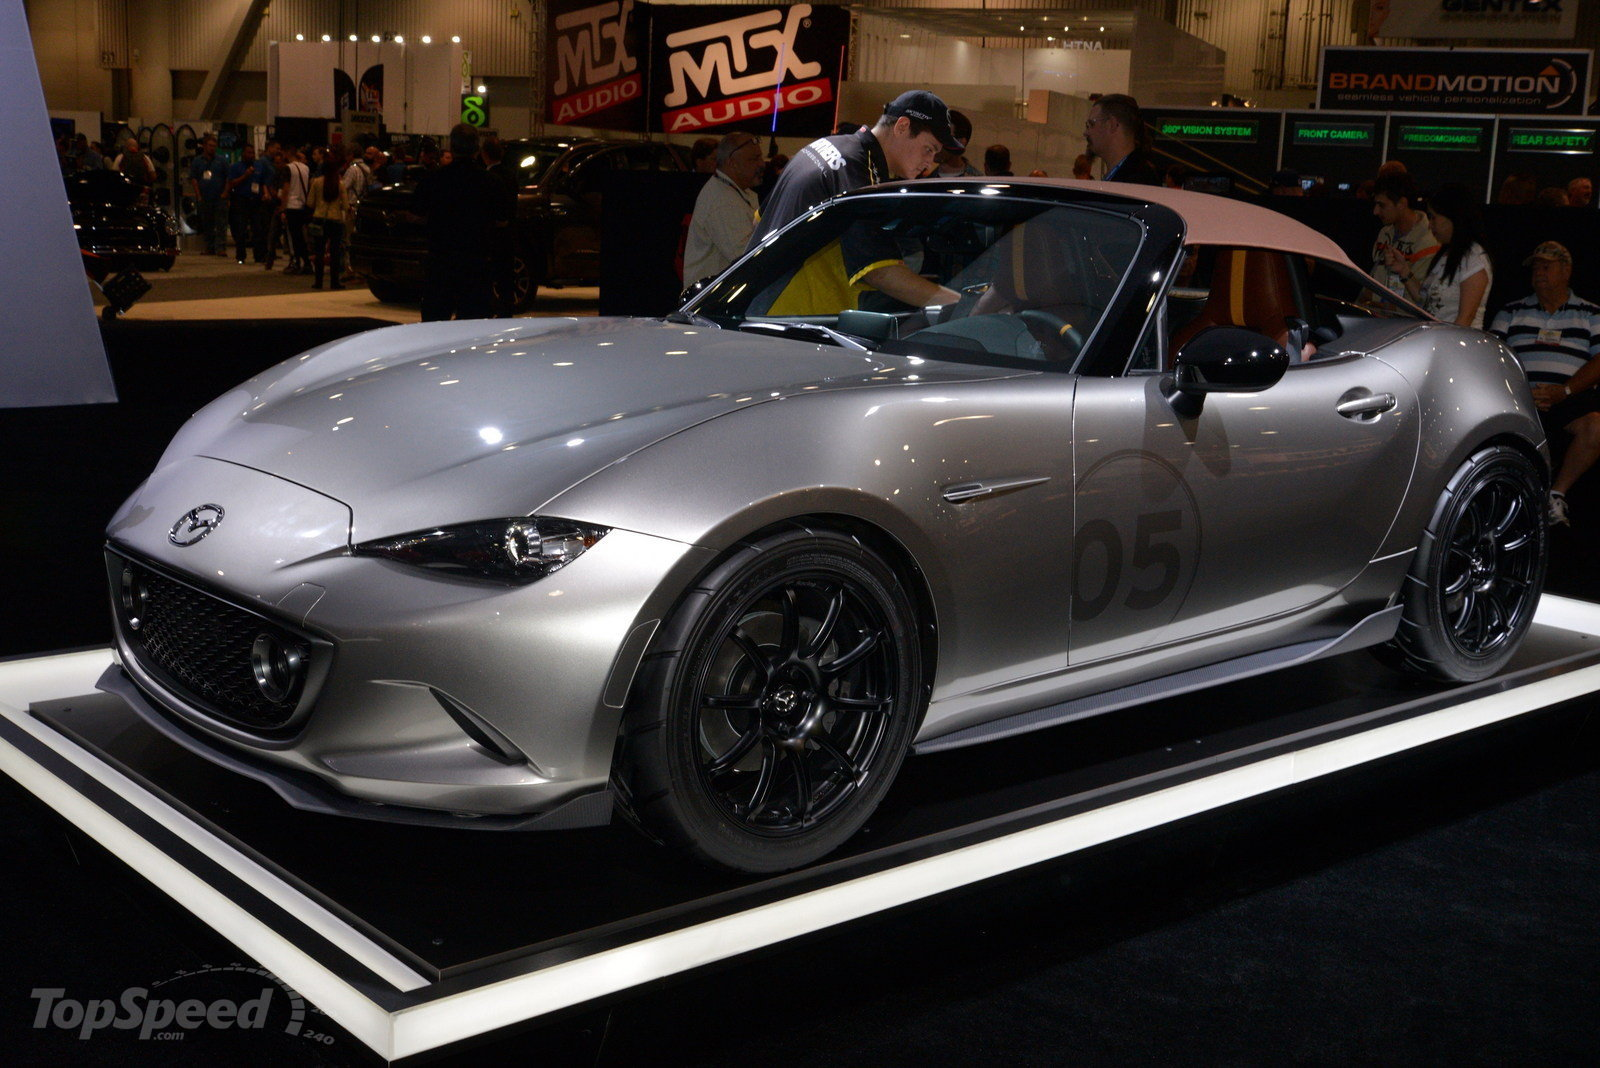 2019 Mazda MX 5 Spyder Concept photo - 3